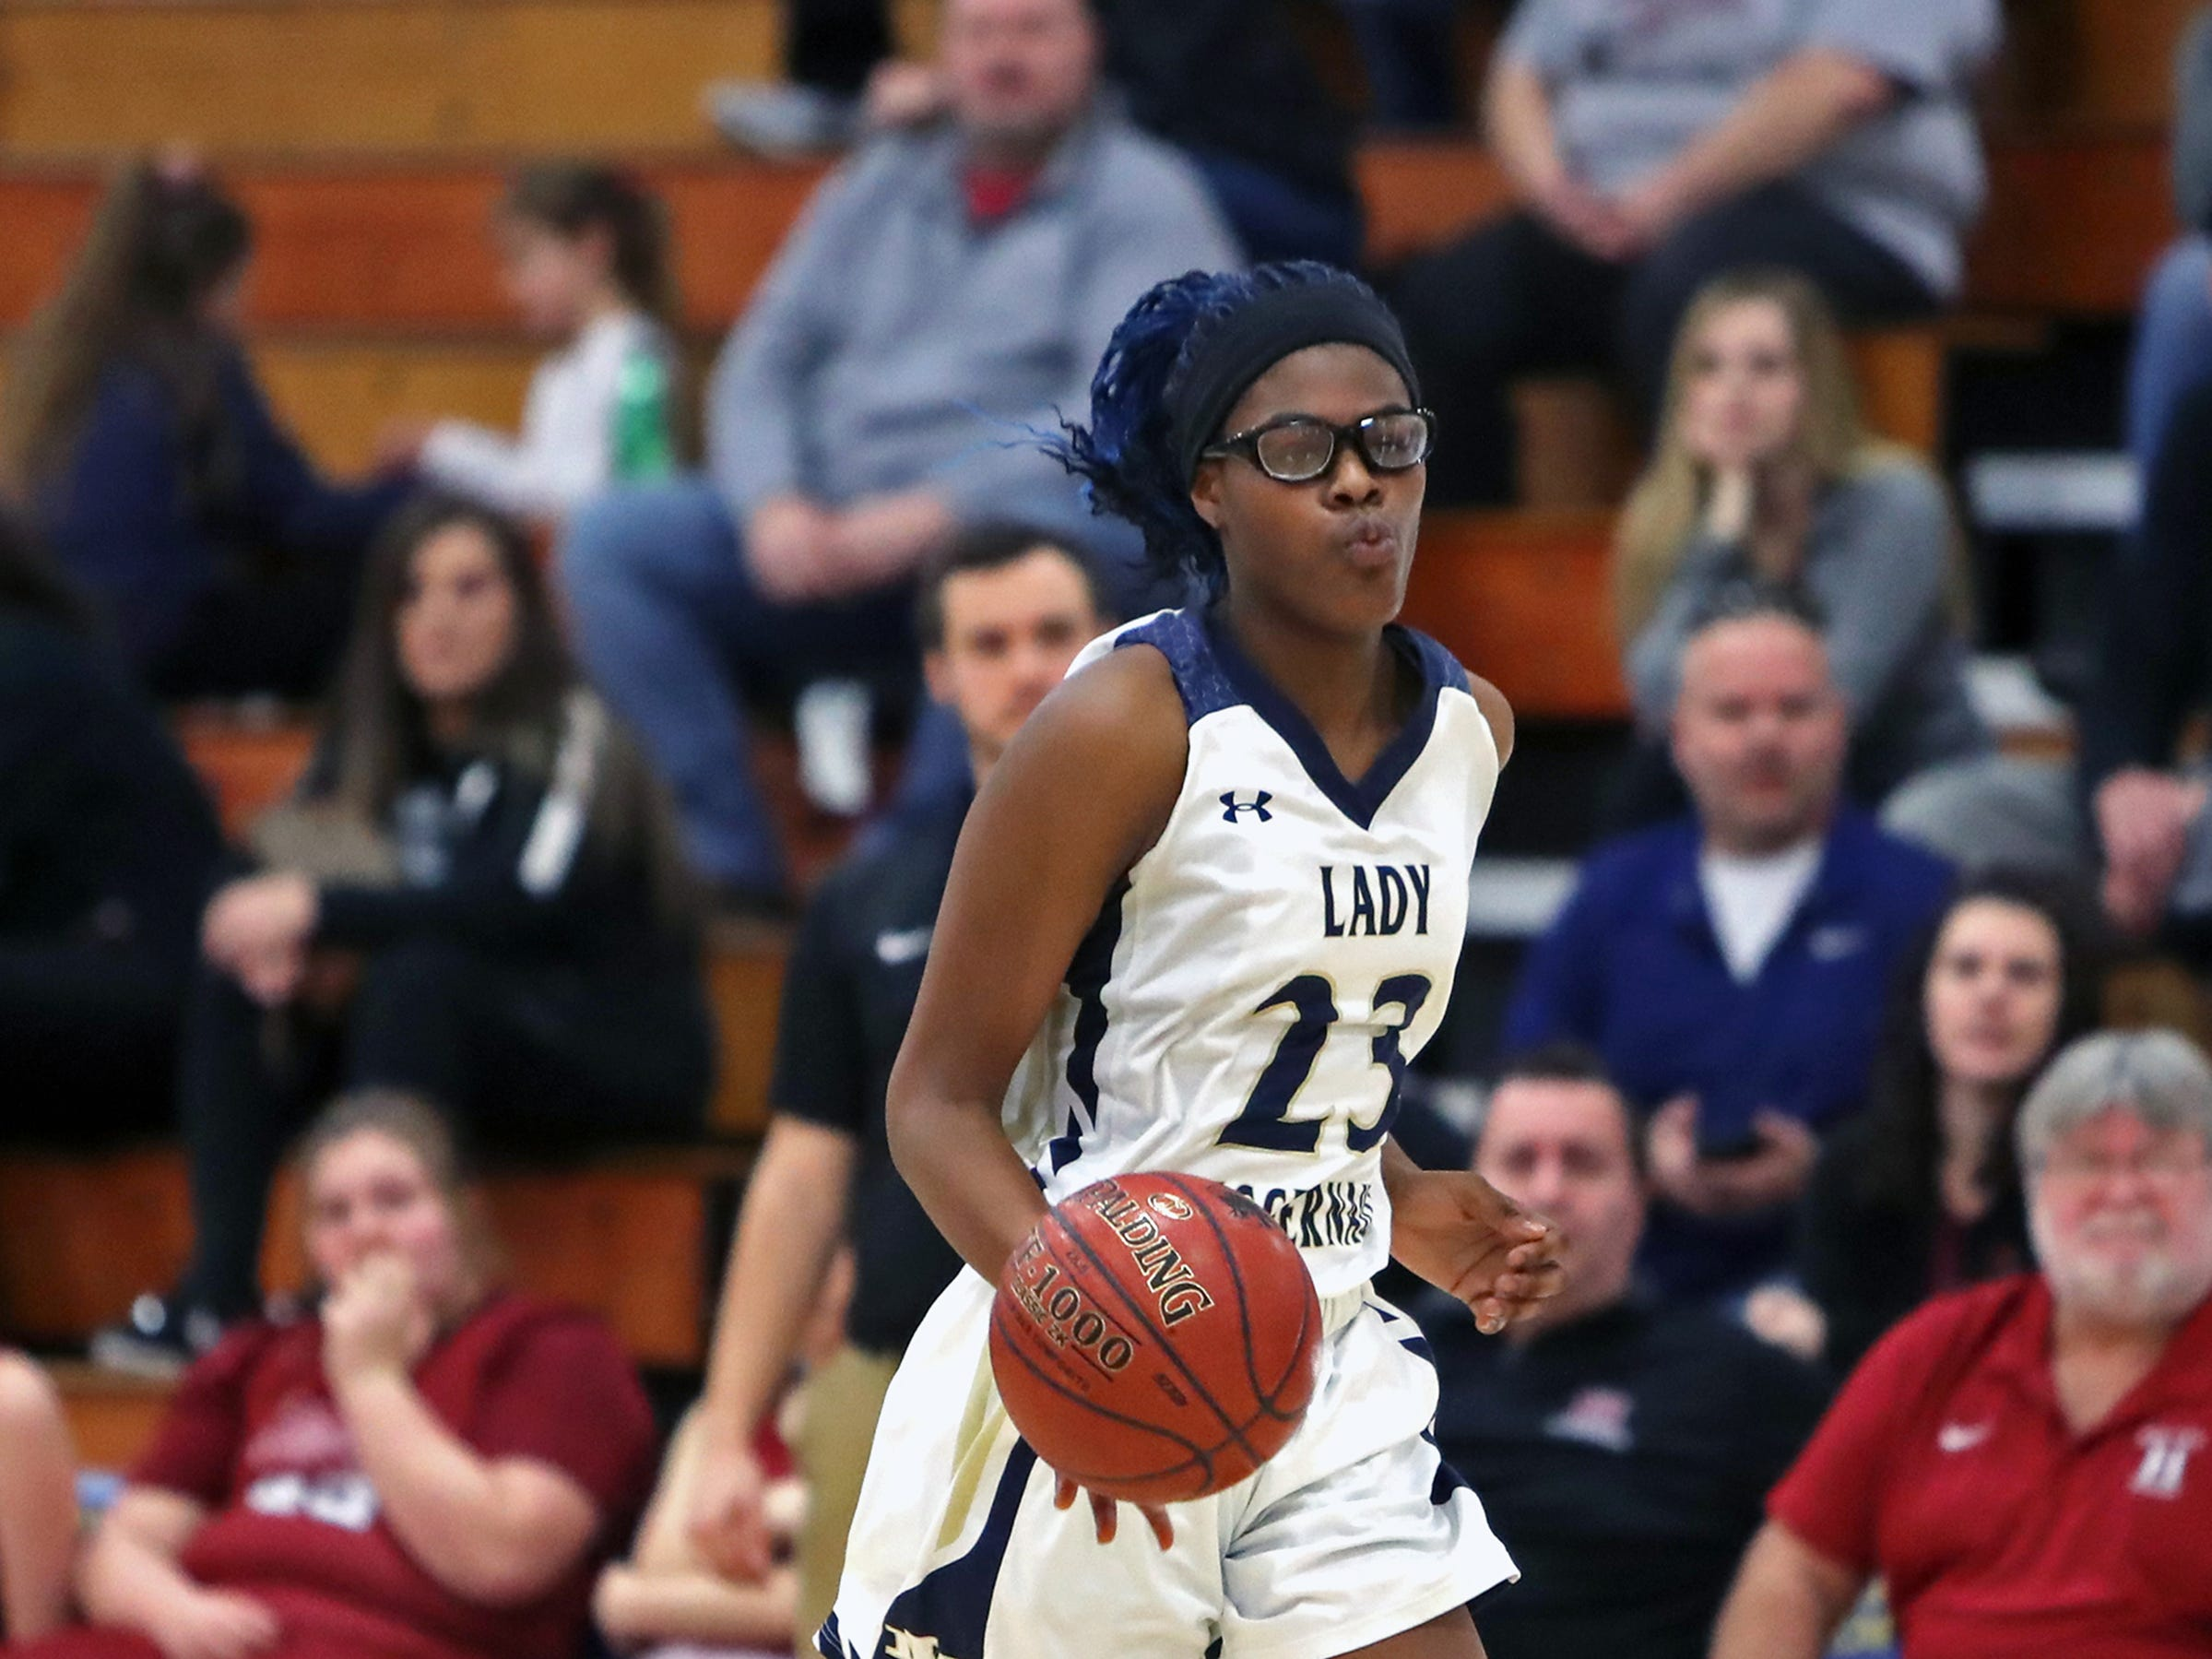 Local preps basketball, wrestling schedule for the week of Jan. 7, 2019